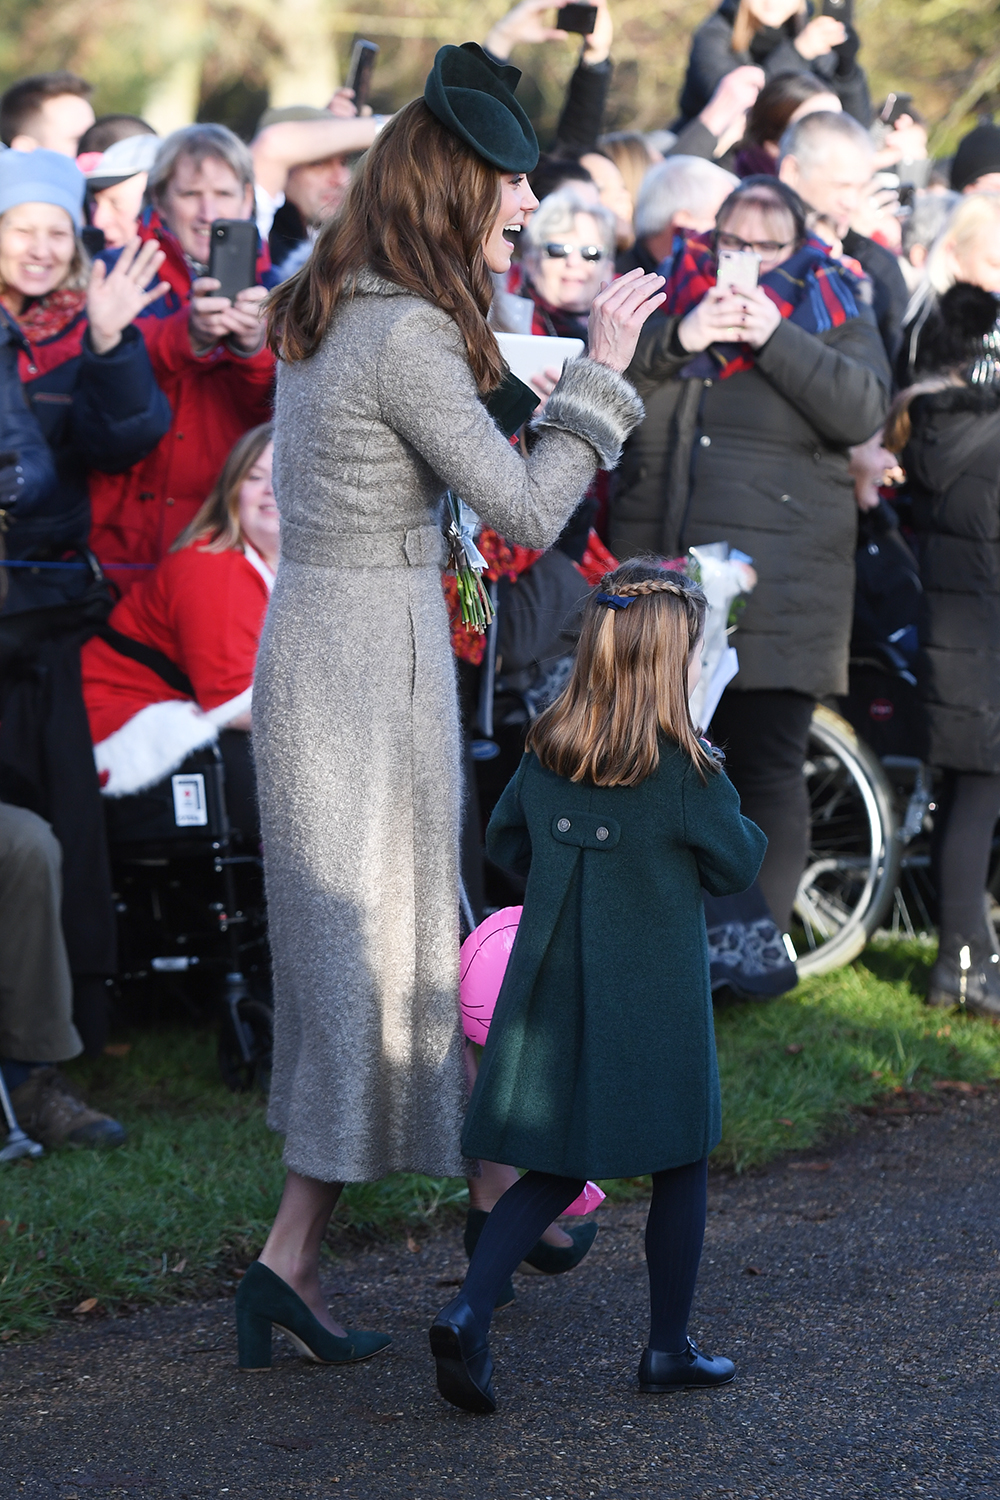 The Duchess of Cambridge and Princess Charlotte meet well wishers after attending the Christmas Day morning church service at St Mary Magdalene Church in Sandringham, Norfolk. (Photo by Joe Giddens/PA Images via Getty Images)